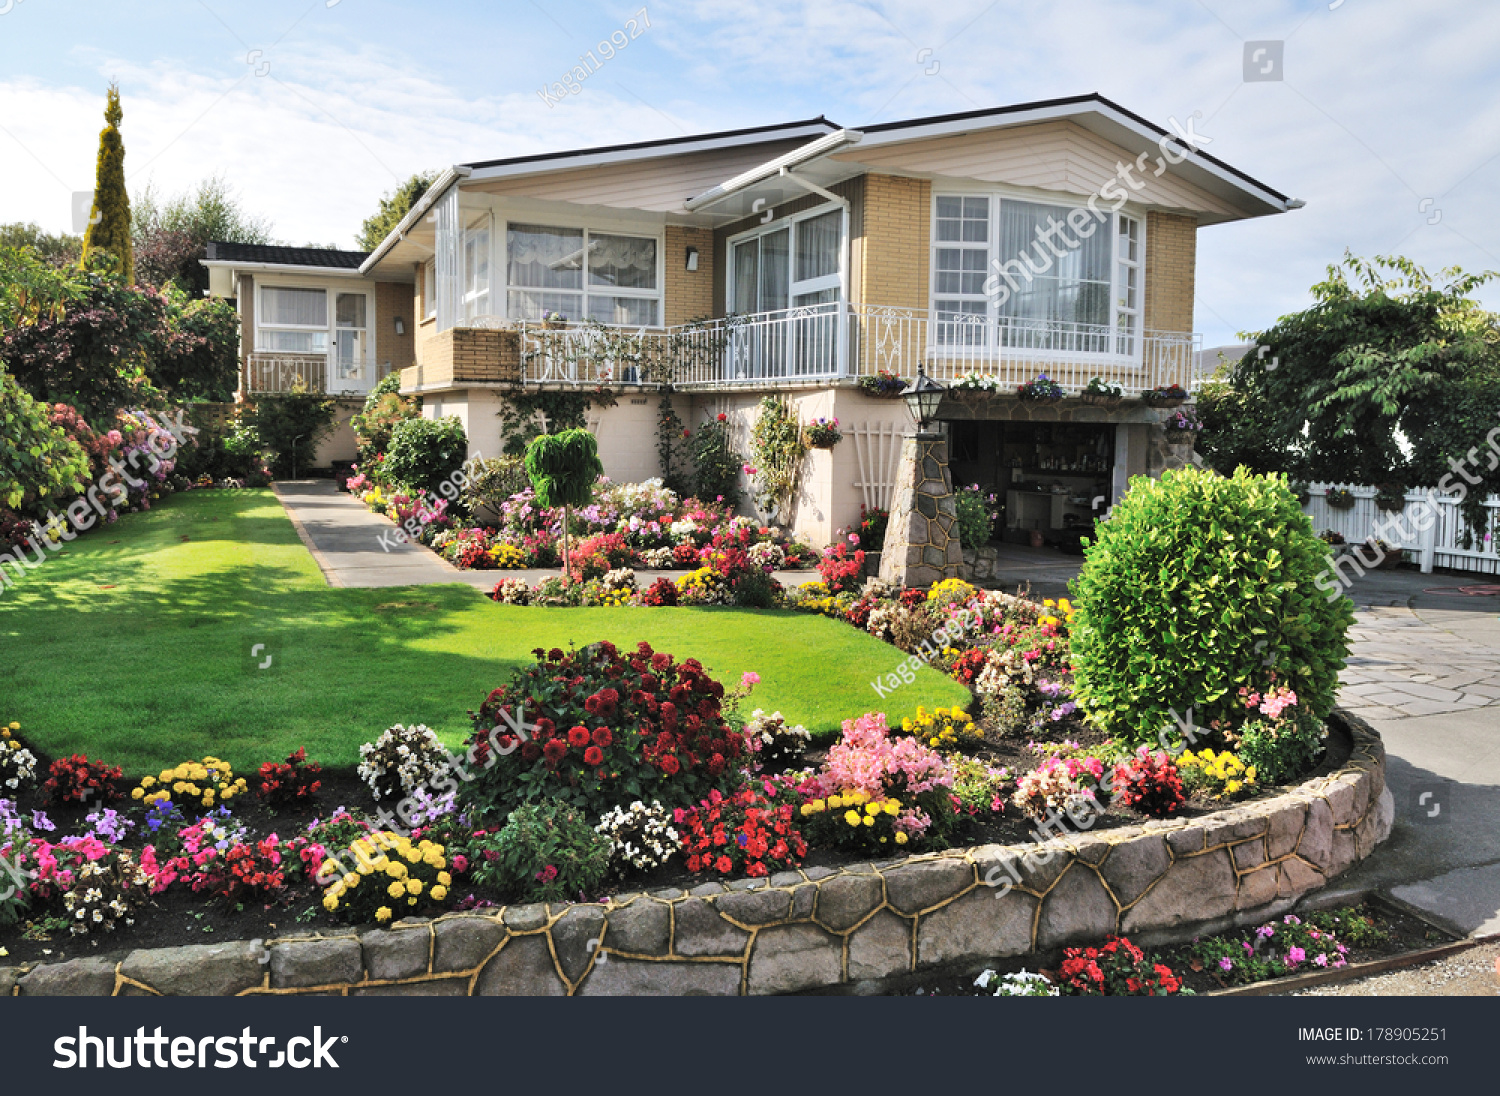 Beautiful Garden Pictures Houses: Beautiful Home With Beautiful Flowers Garden